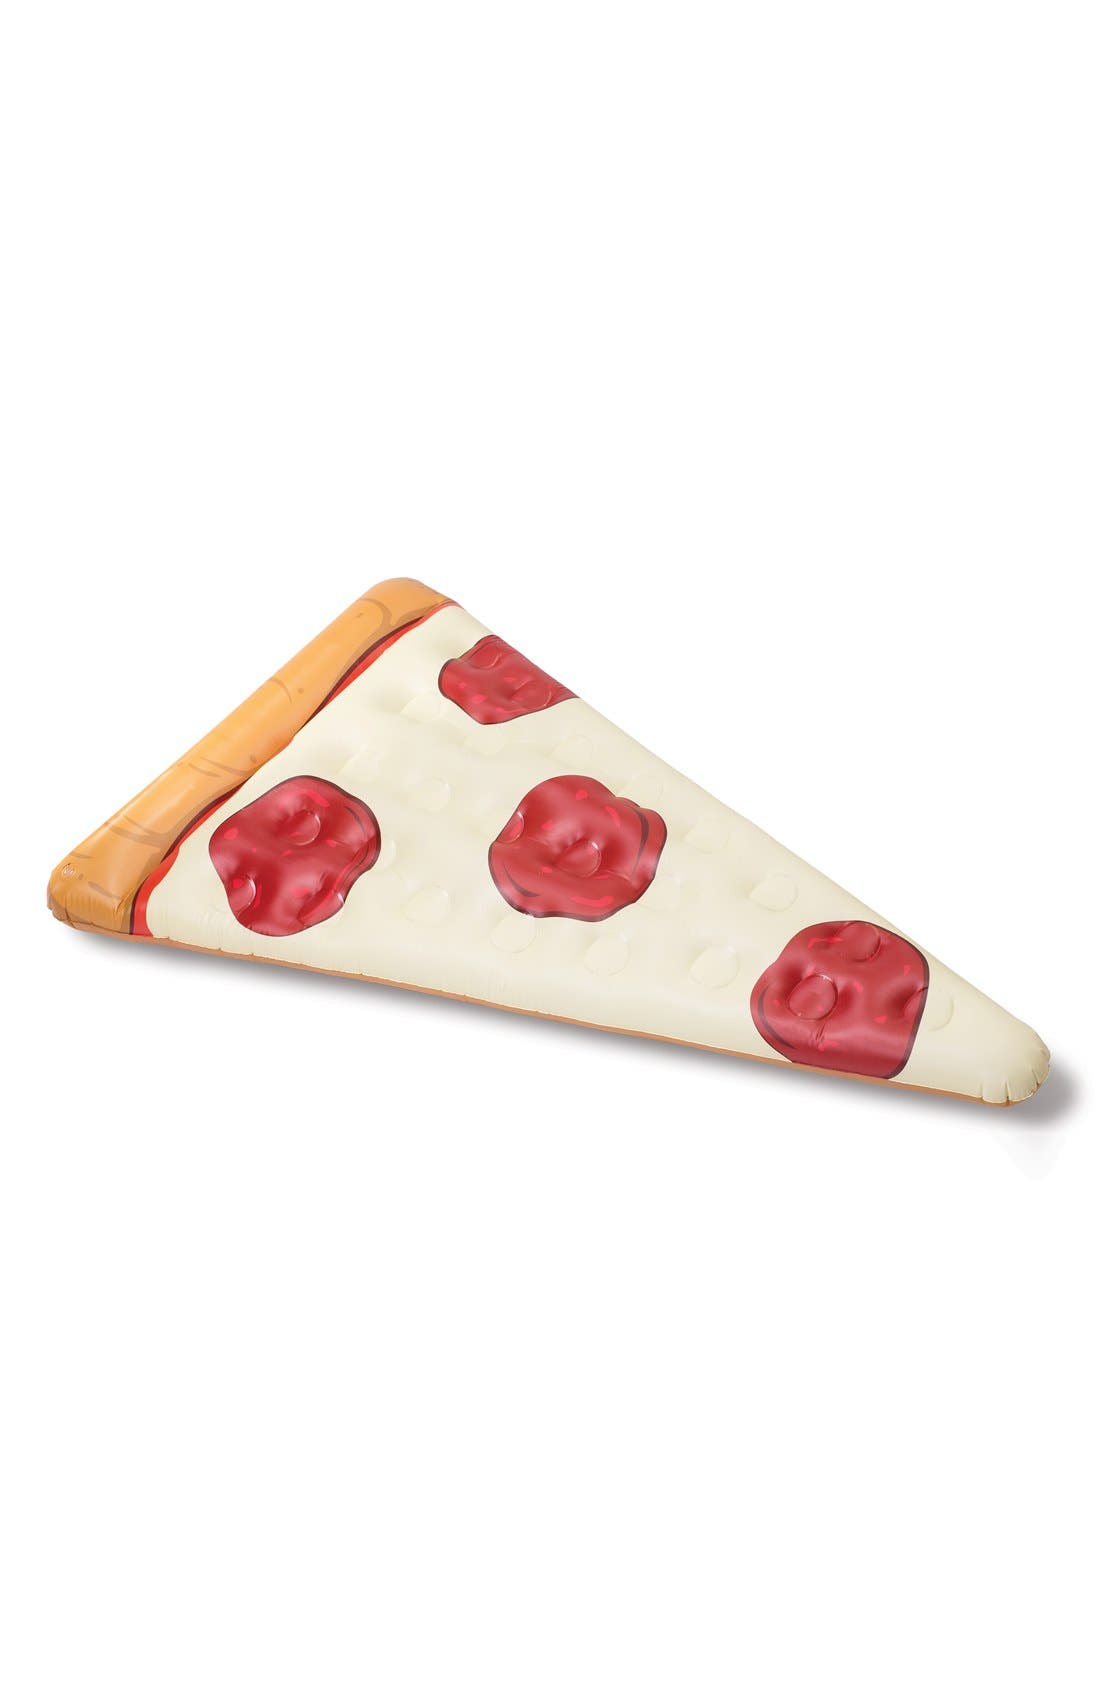 Giant Pizza Slice Pool Float,                         Main,                         color, Multi Red